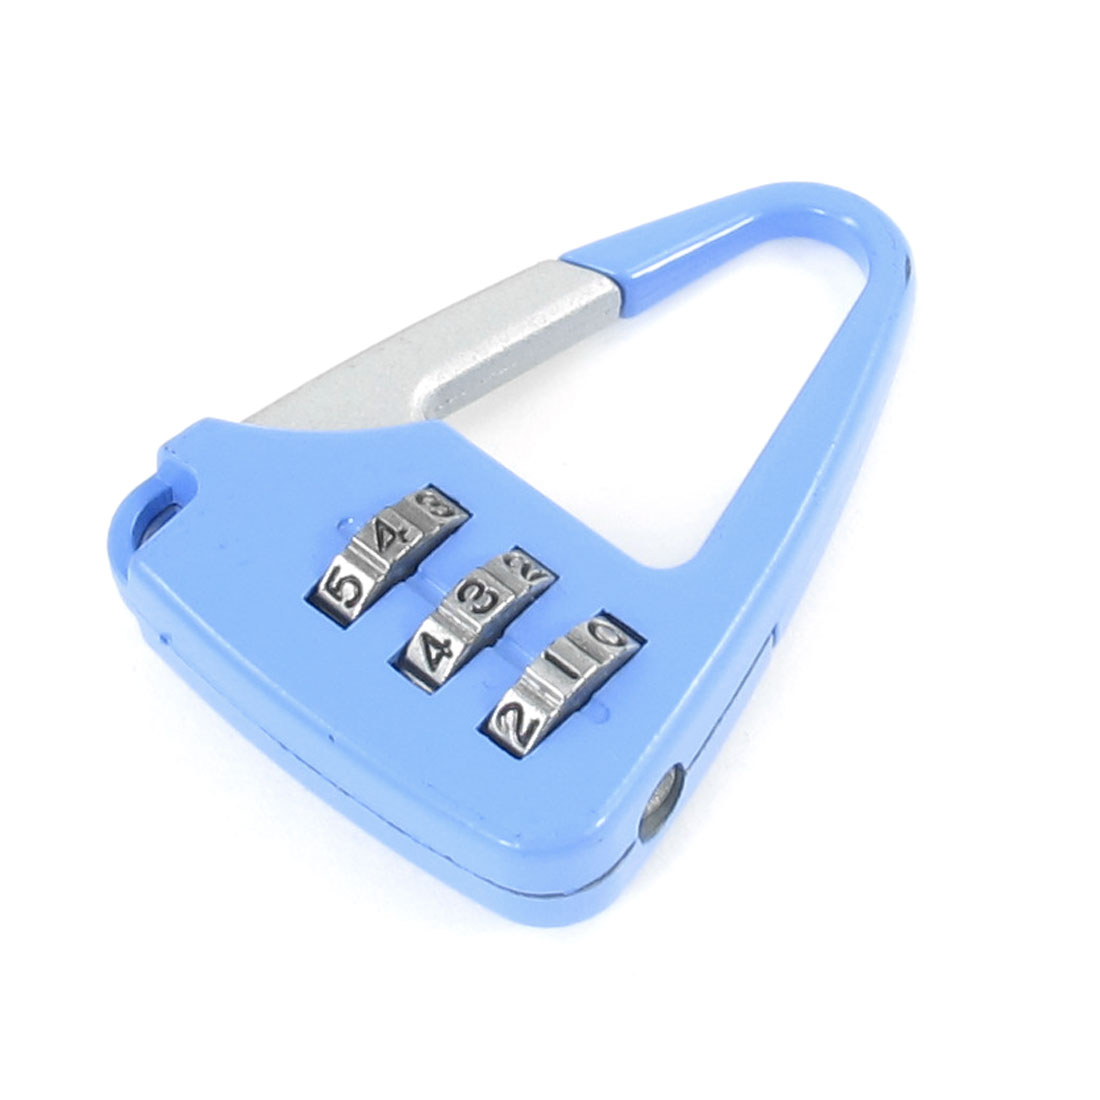 Light Blue Metallic Handbag Design 3 Digit 0-9 Number Combination Lock Padlock